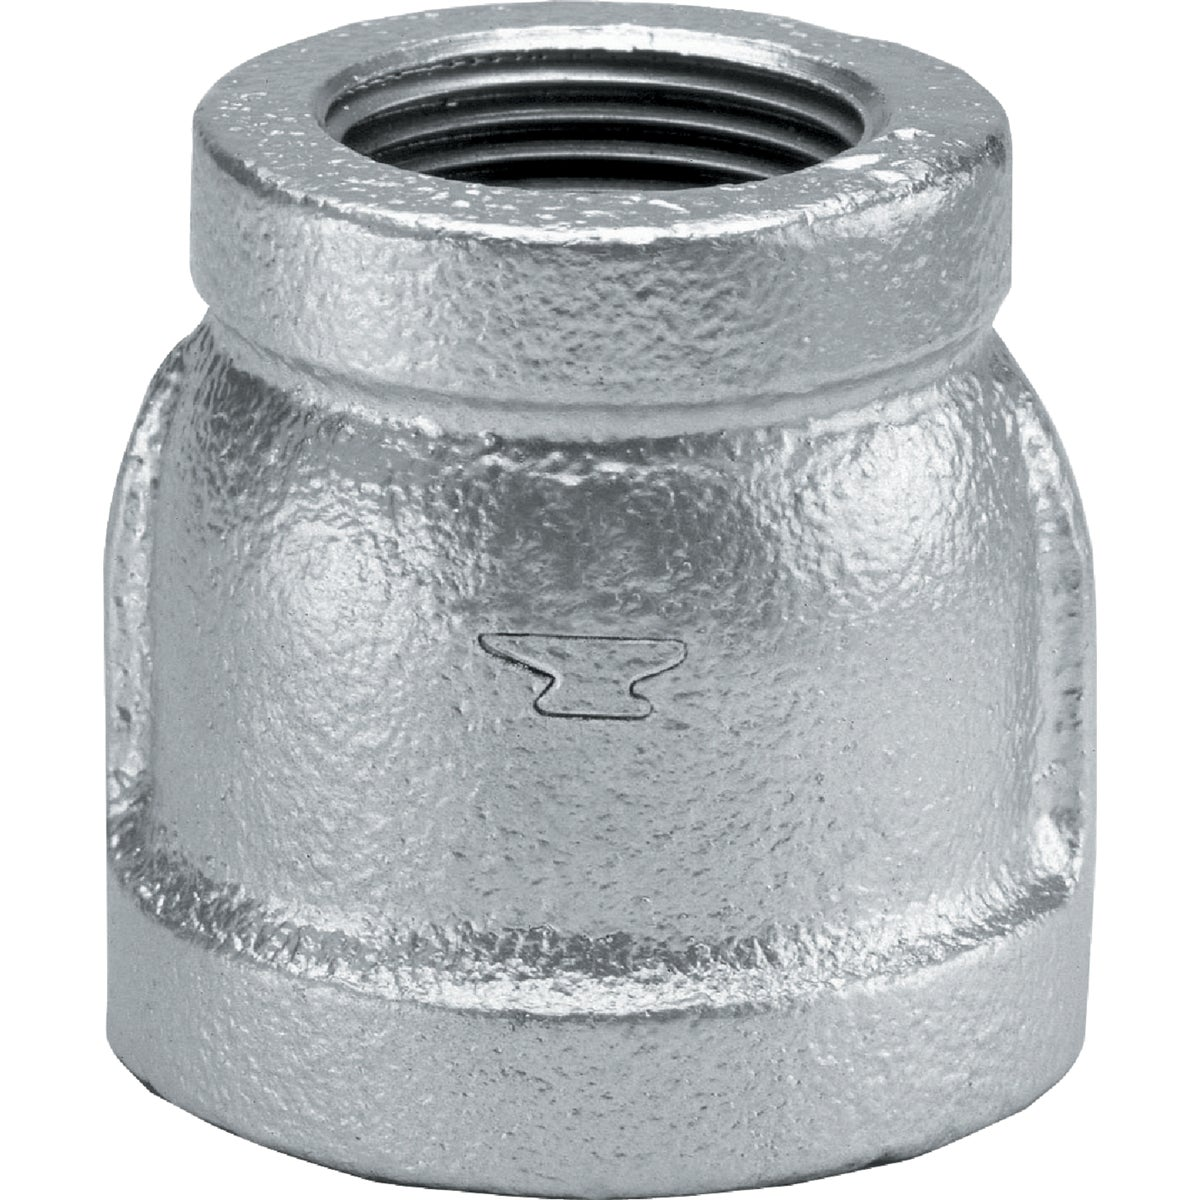 2X1 GALV COUPLING